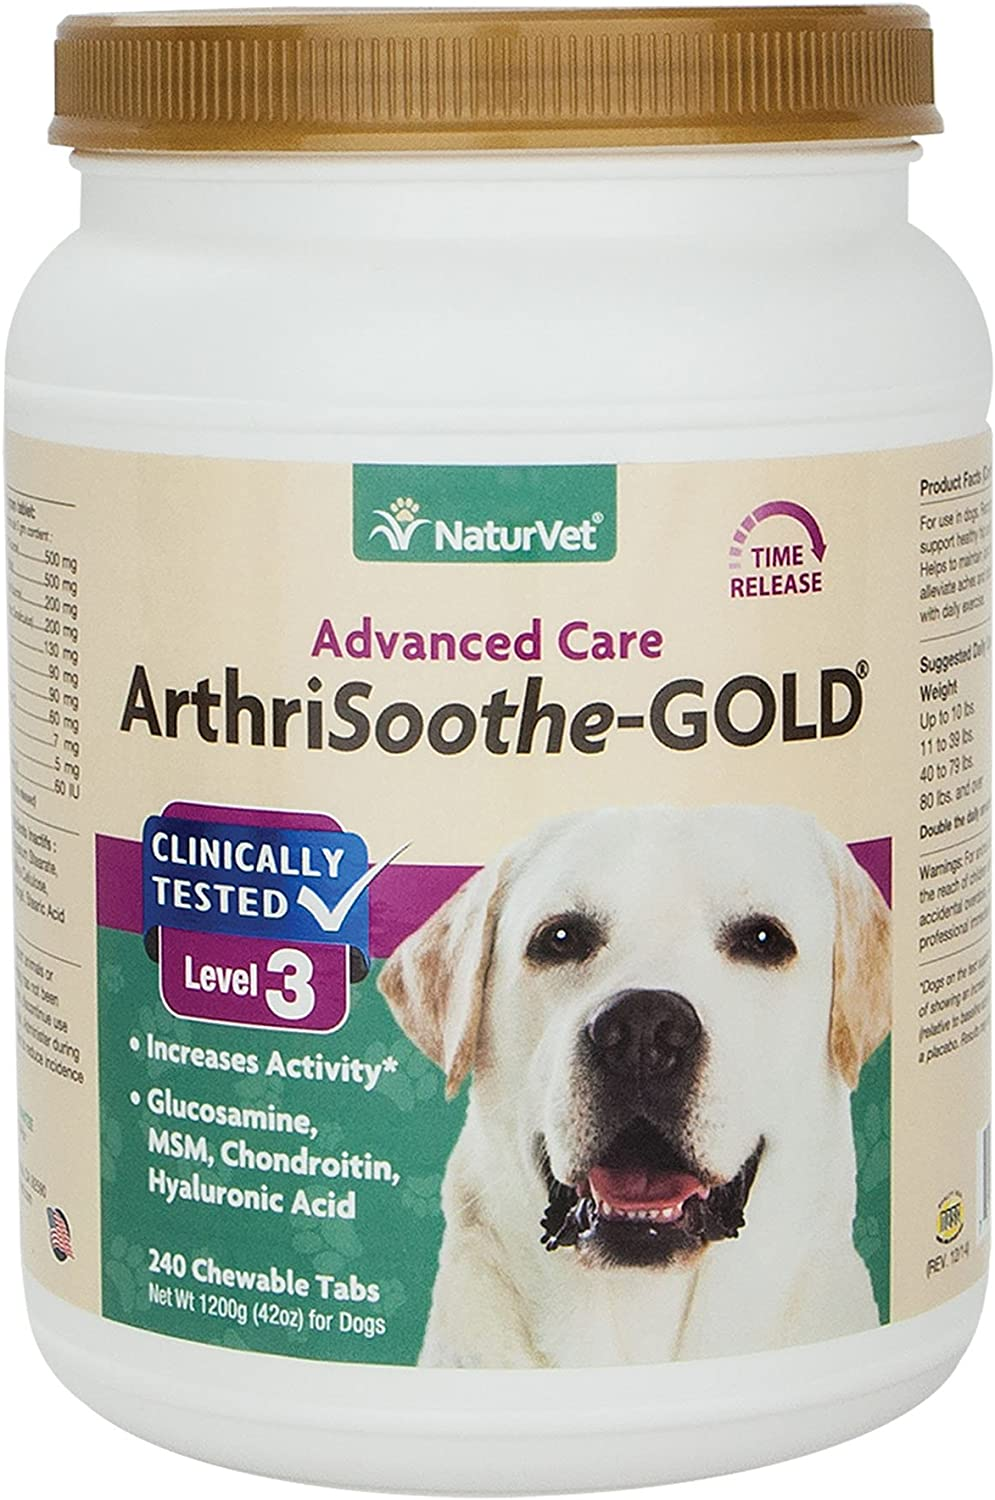 NaturVet ARTHRISOOTHEgold Healthy Hip & Joint Flexibility For Dogs 240 Tablets